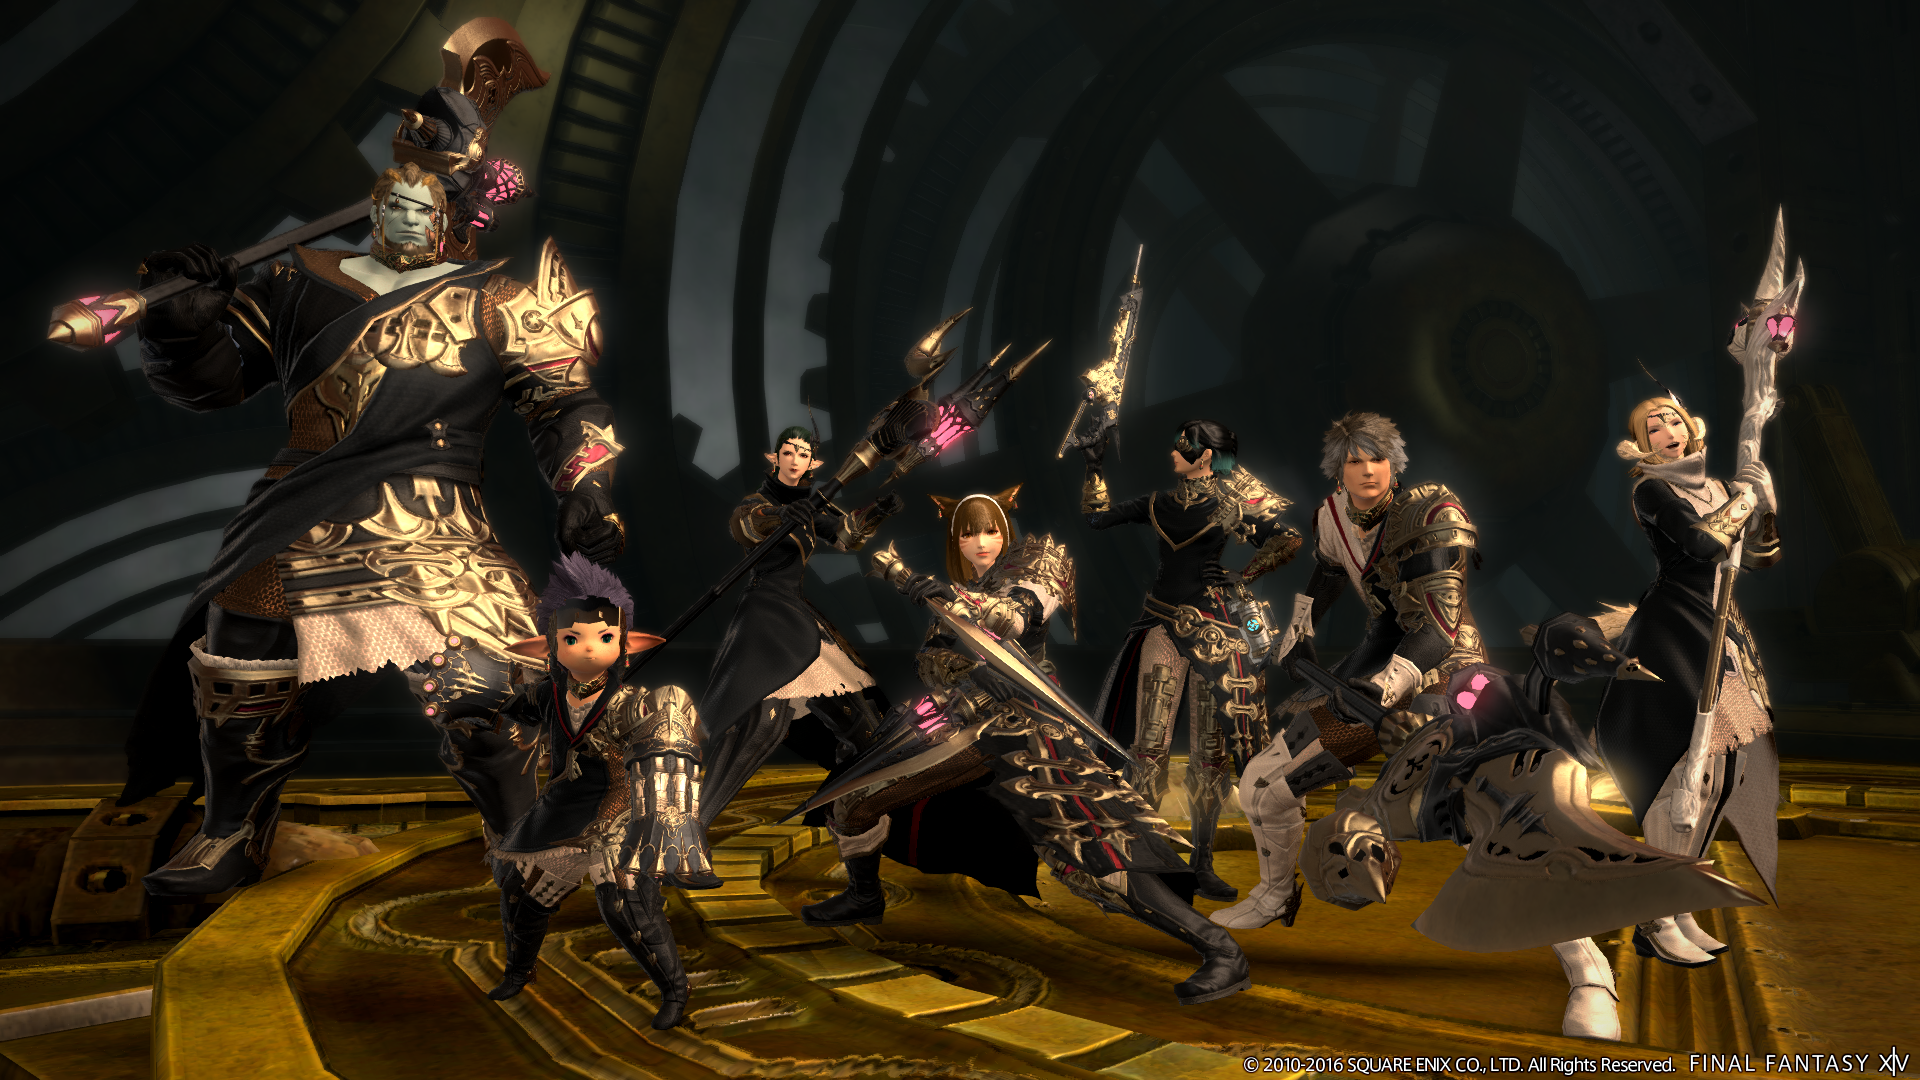 New Final Fantasy XIV Patch Adds Helpful Goodies for Novices and More